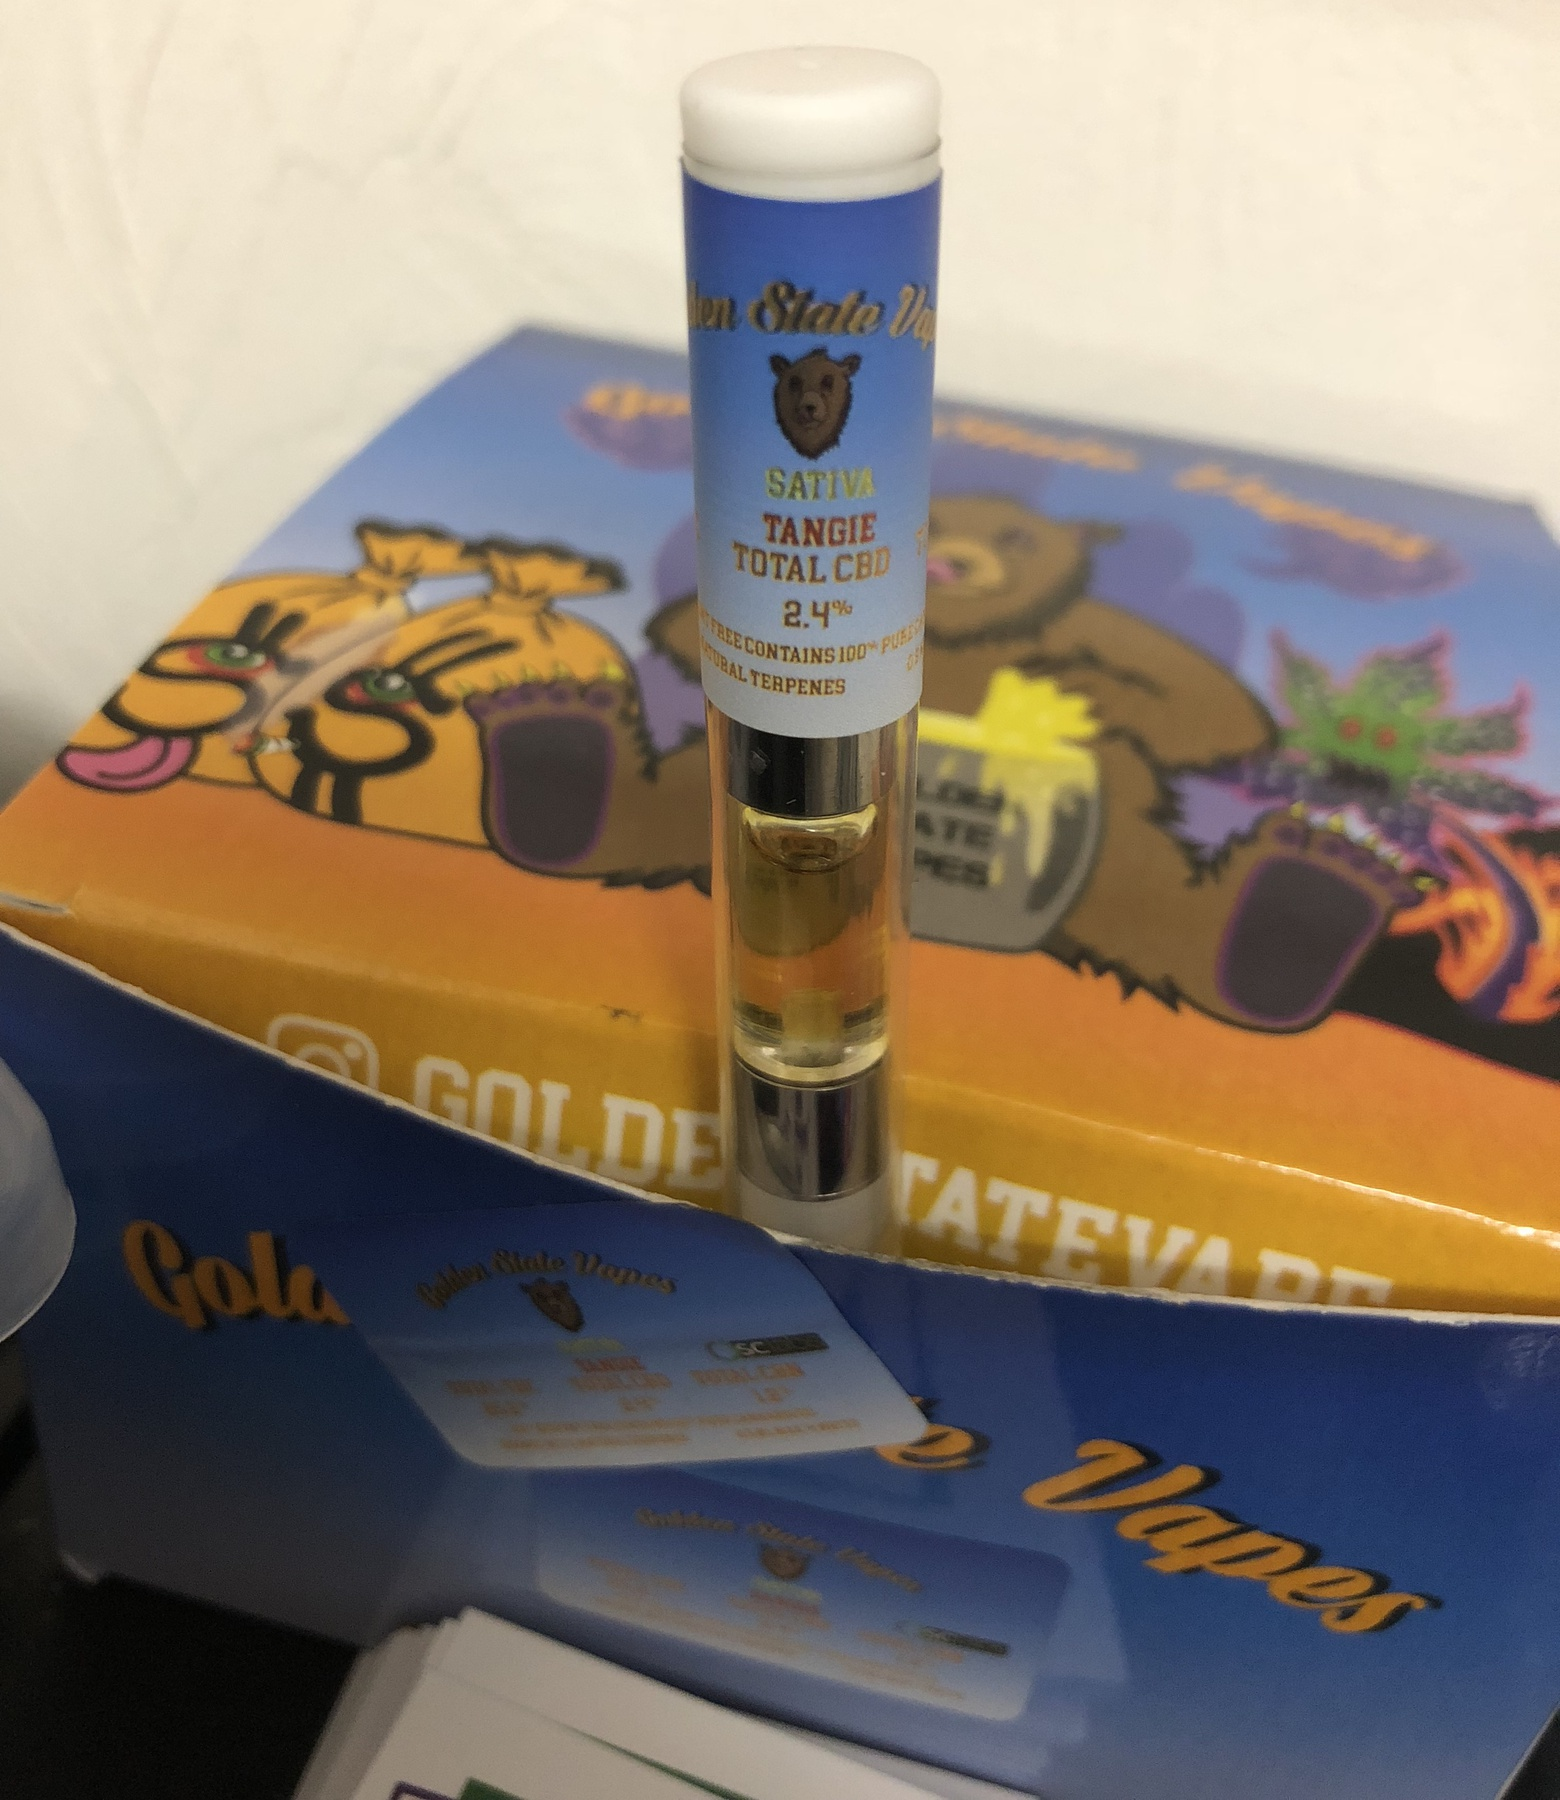 Tangie Oil Cartridge (sativa) Product image